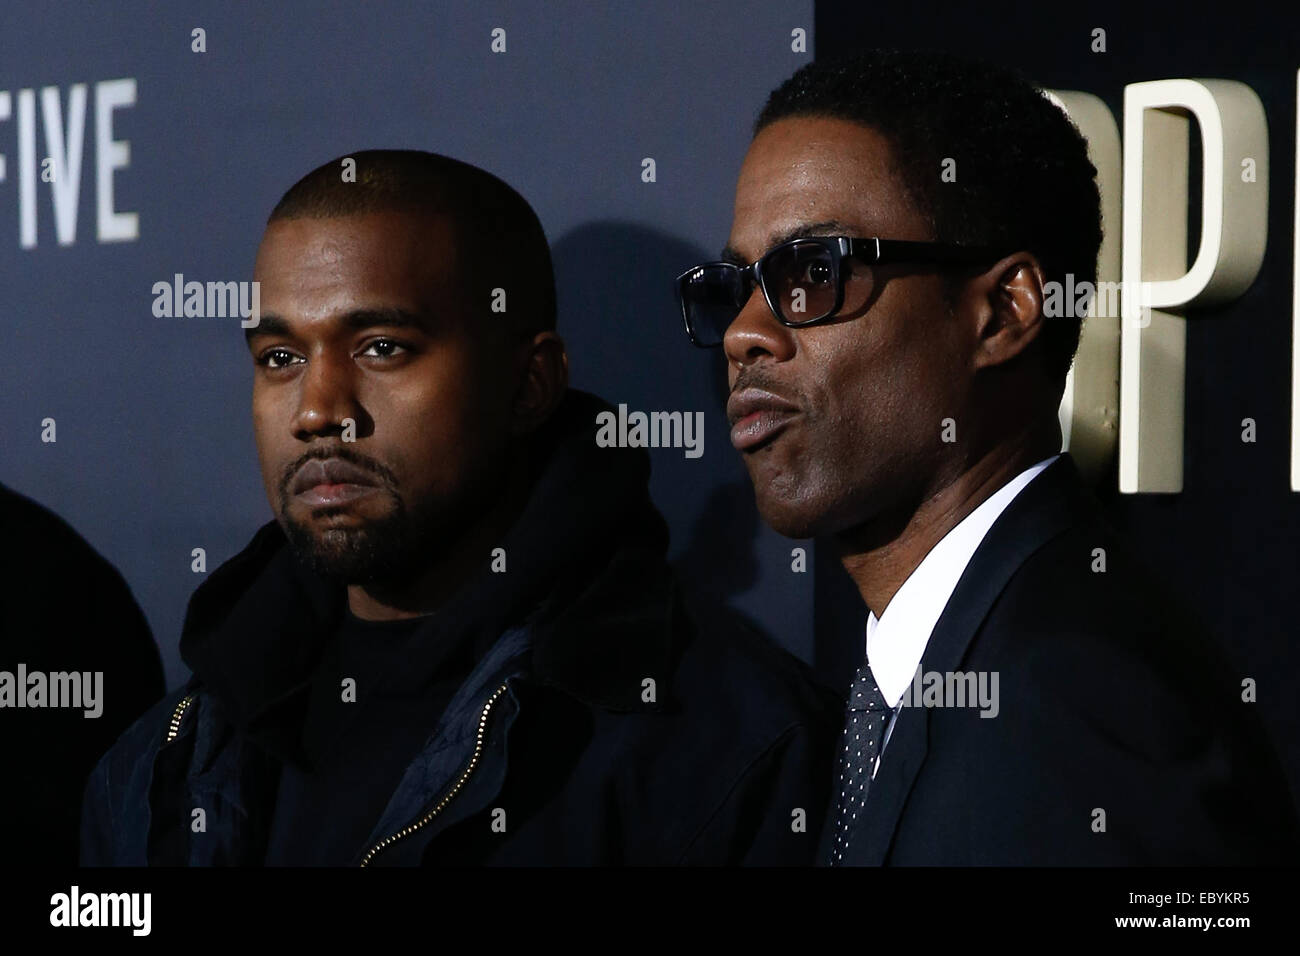 NEW YORK-DEC 3: Comedian/actor Chris Rock (R) and rapper Kanye West attend the 'Top Five' premiere at the - Stock Image